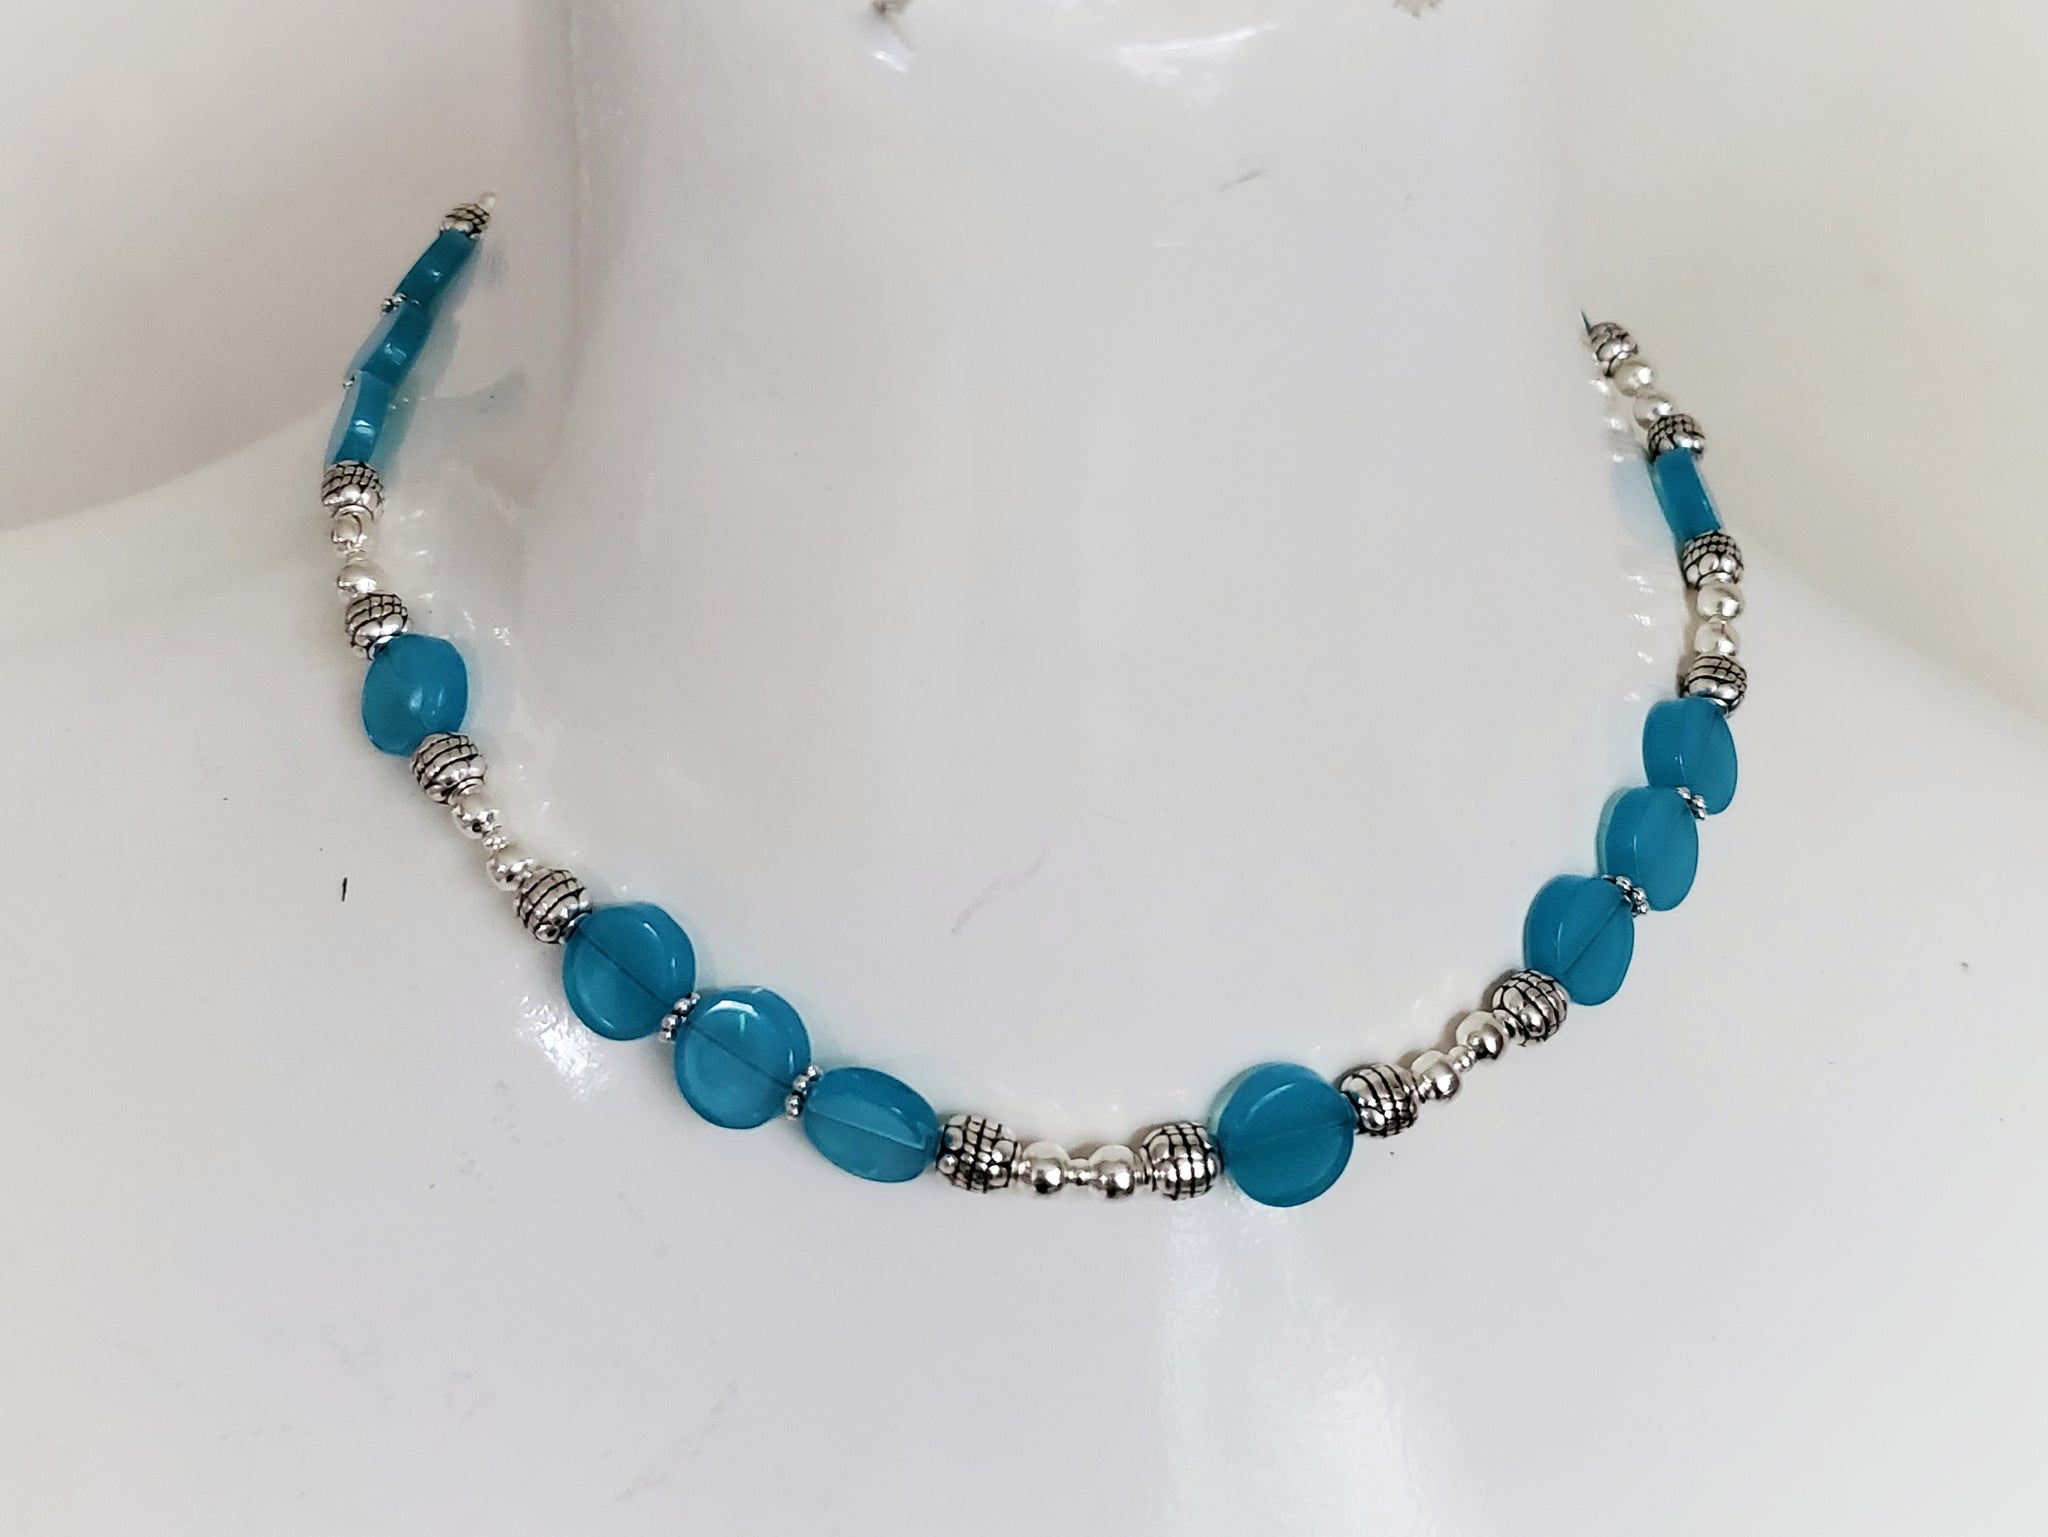 Ocean Blue Handmade Jewelry Gift Set